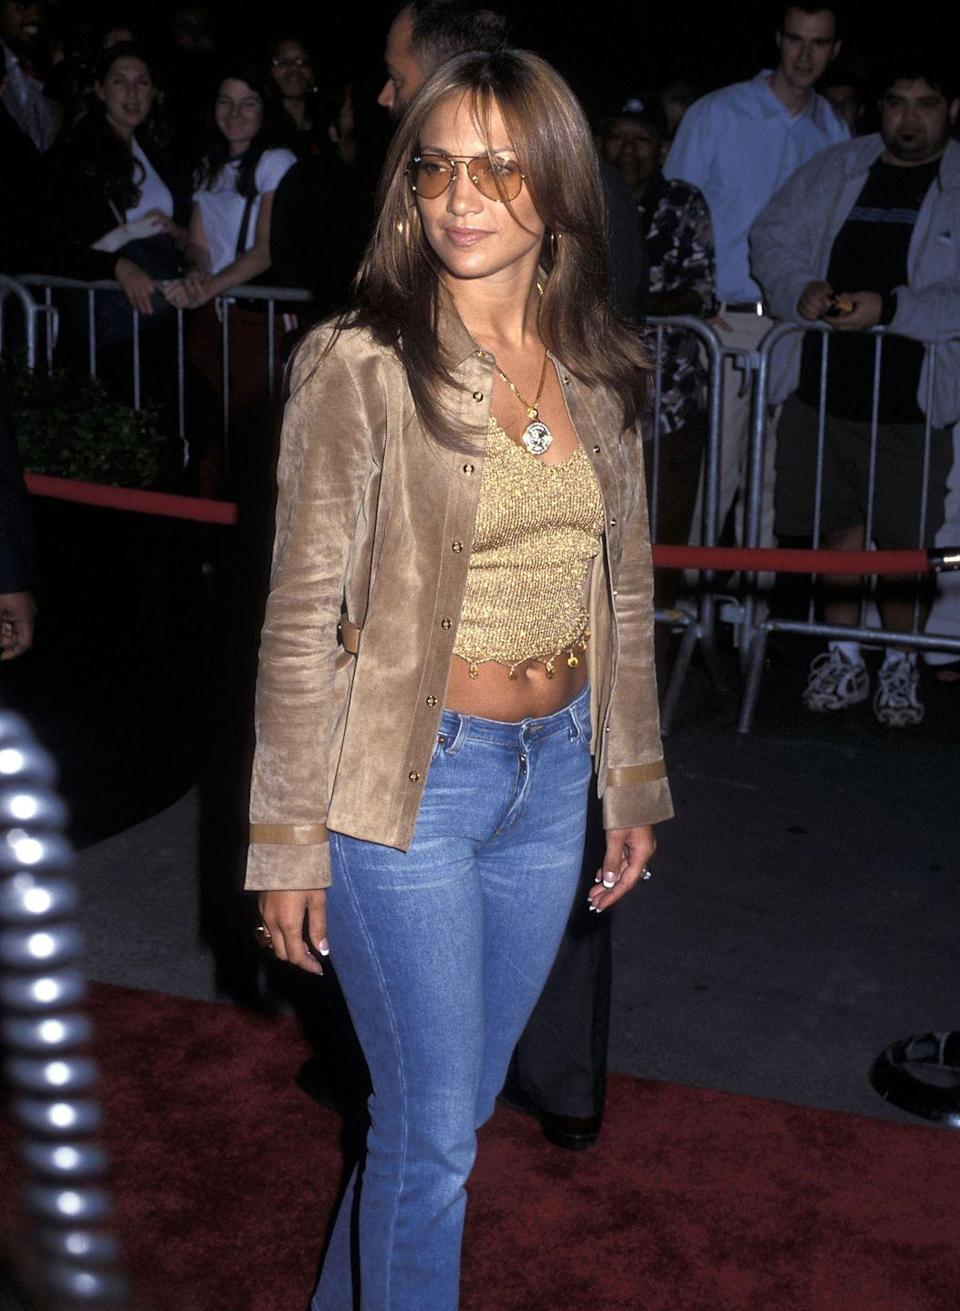 <p>Jennifer Lopez red carpet look at the <em>Bamboozled </em>premiere ticked off several early '00s fashion boxes. Low-rise jeans, a sparkly crop top, suede jacket, and light sunglasses make this a fall fave.</p>